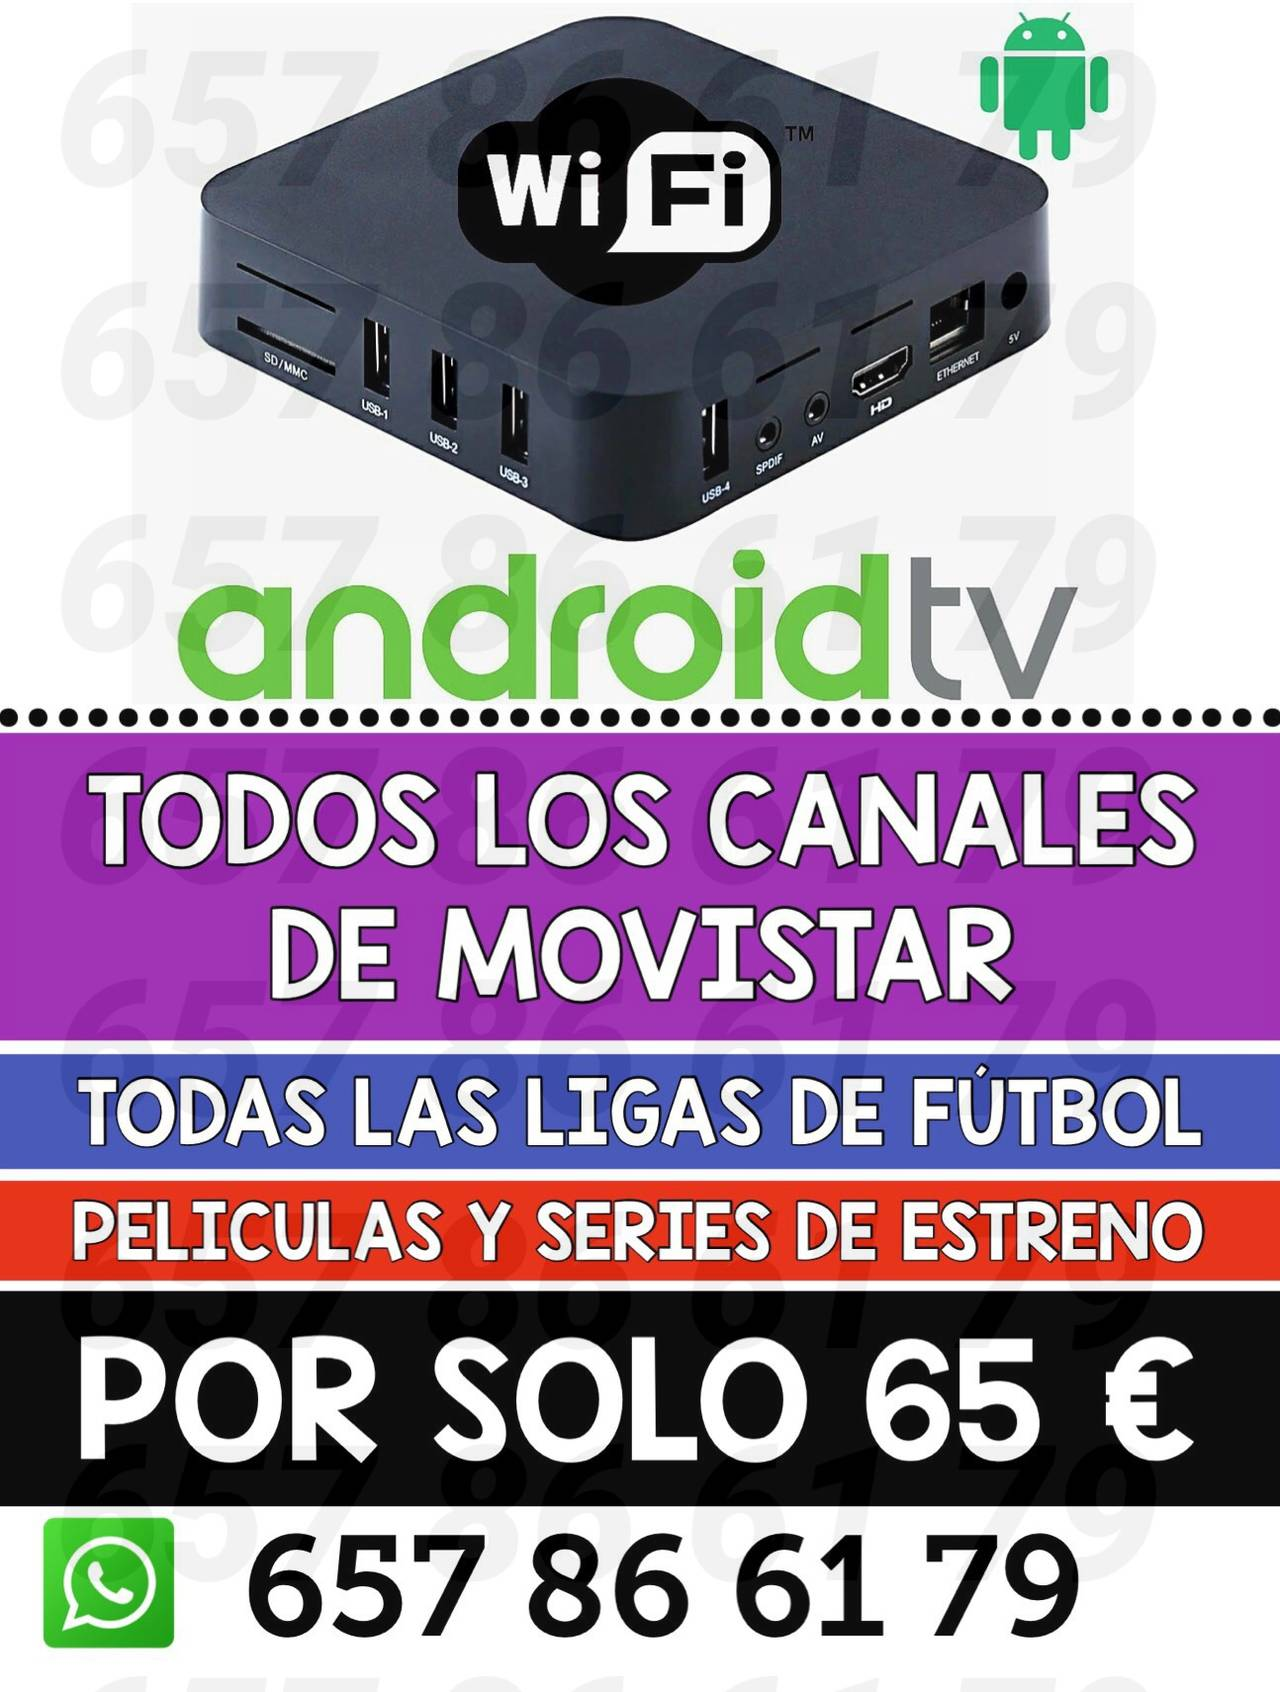 ANDROID TV + CANALES